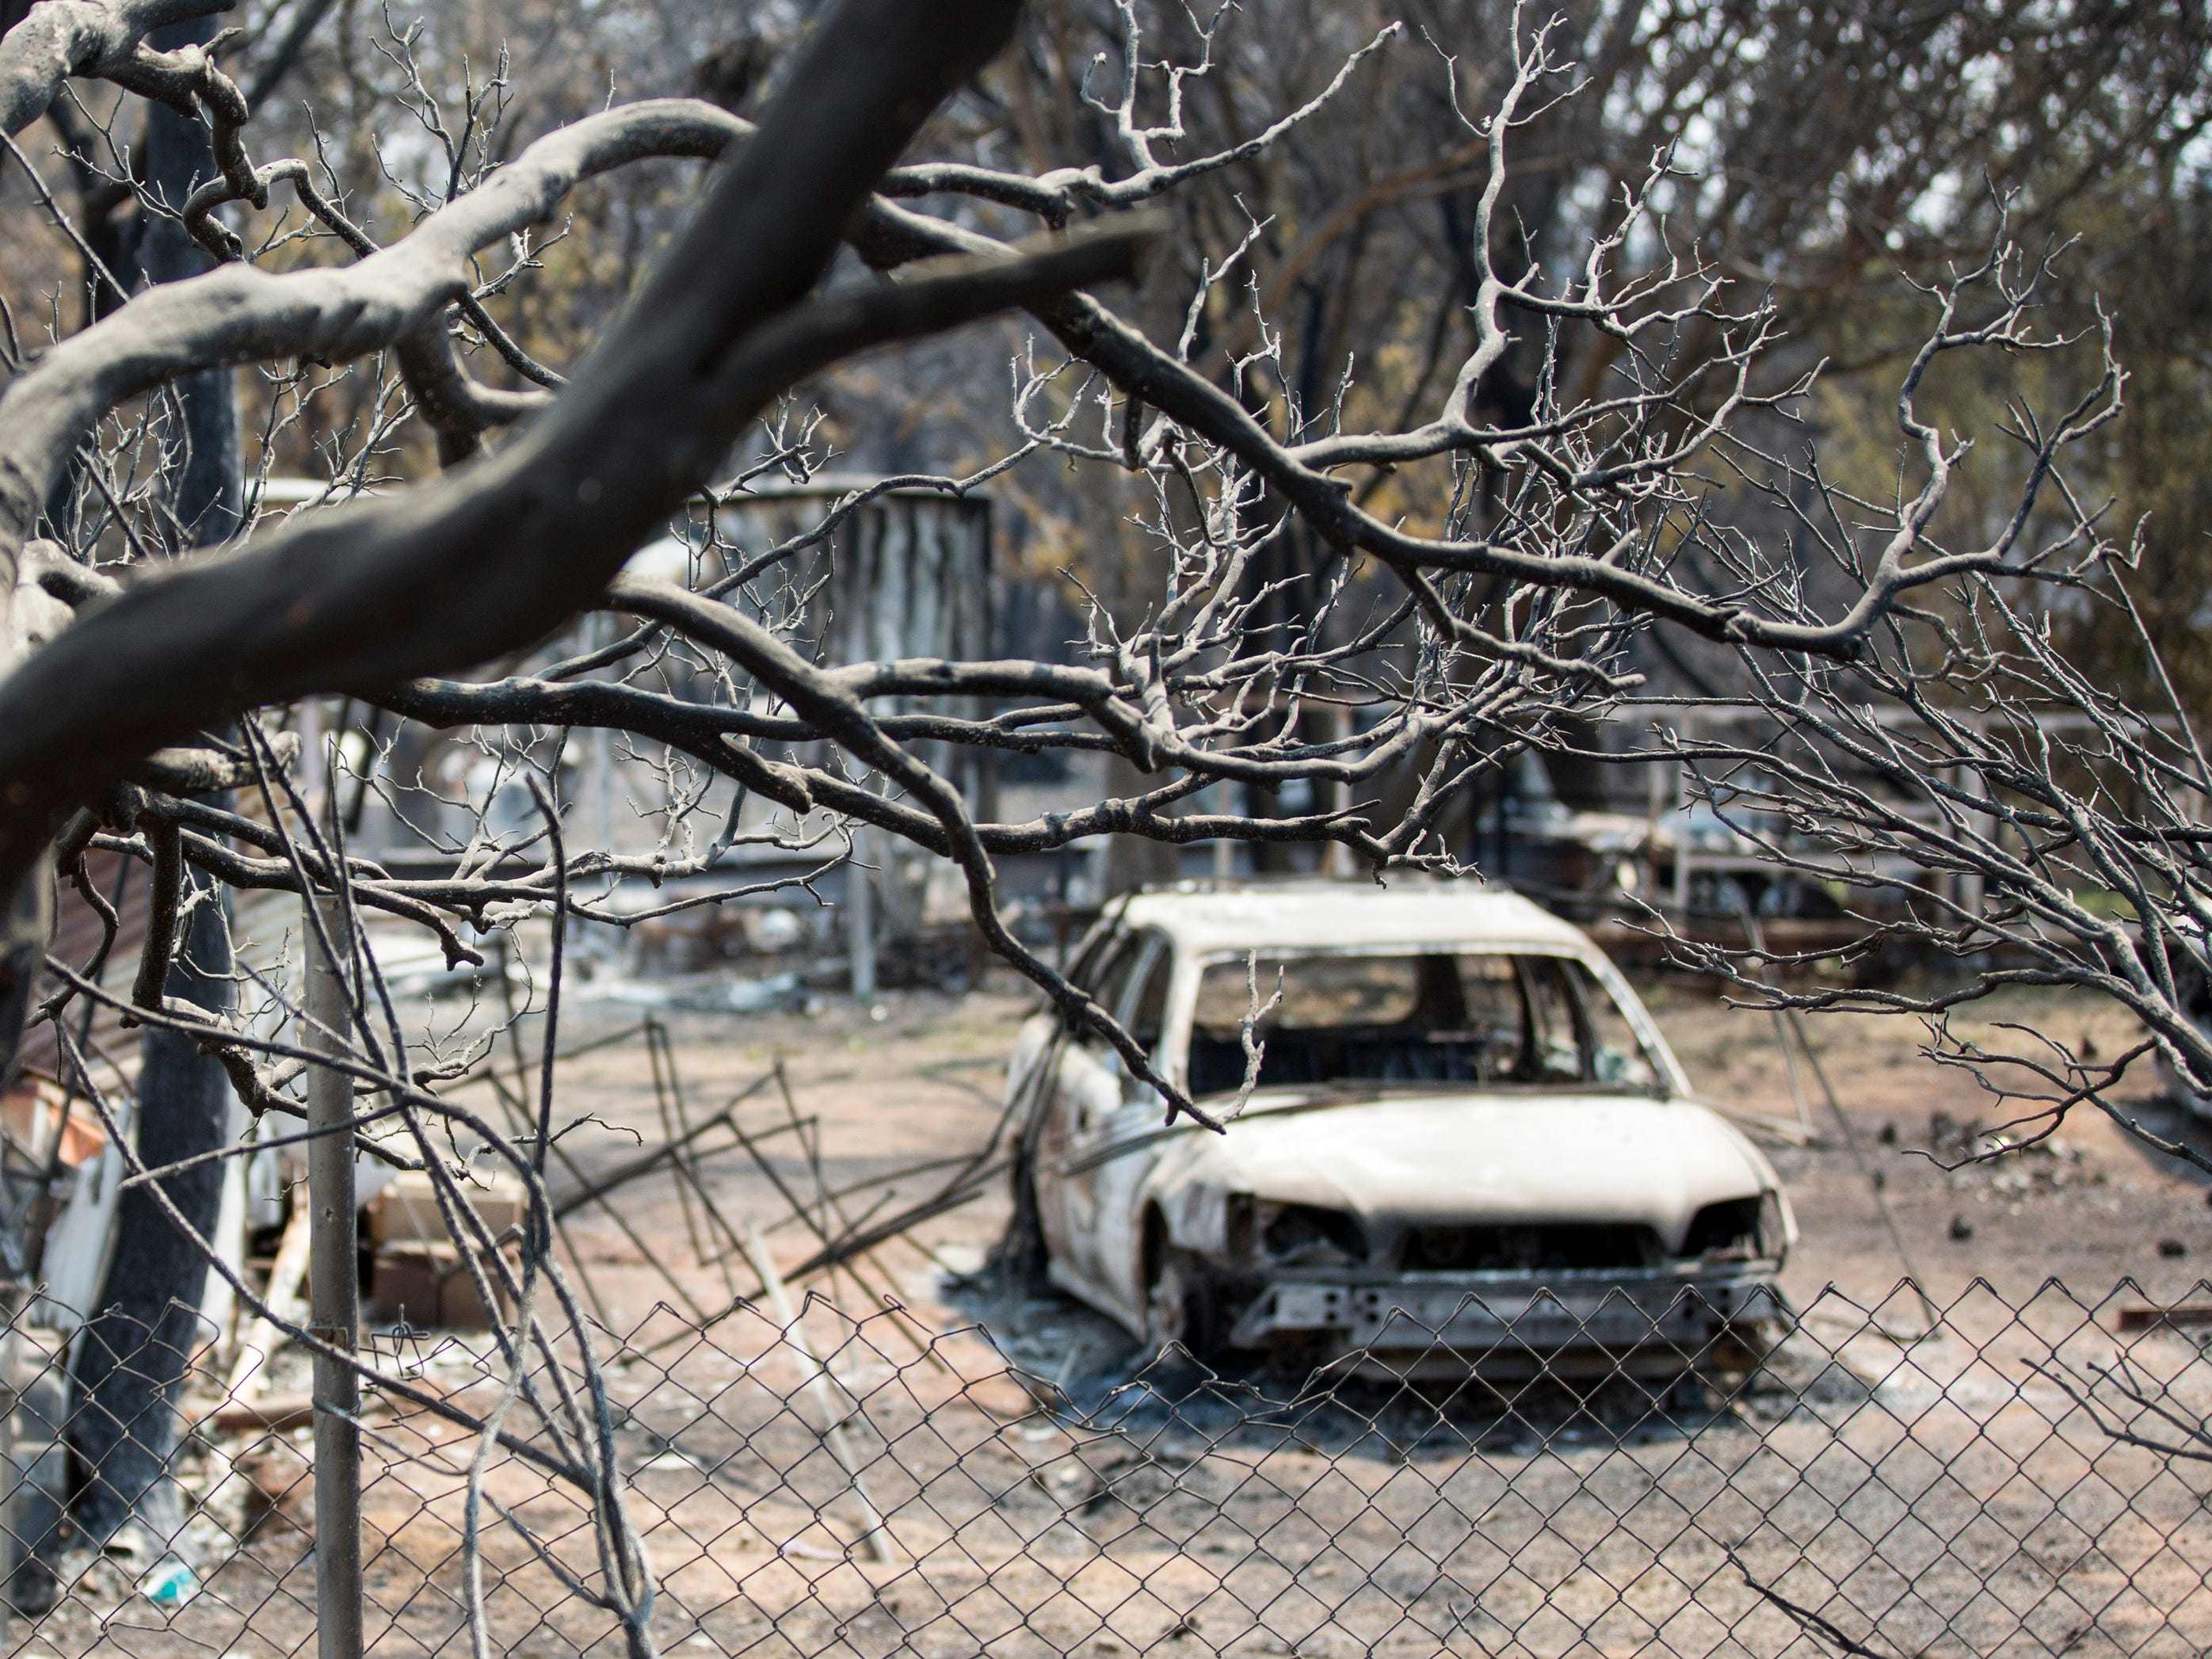 Blackened trees and the hulls of cars remain following the Carr fire which burned down all but 2 homes in Keswick, Calif., Tuesday, August 21, 2018.